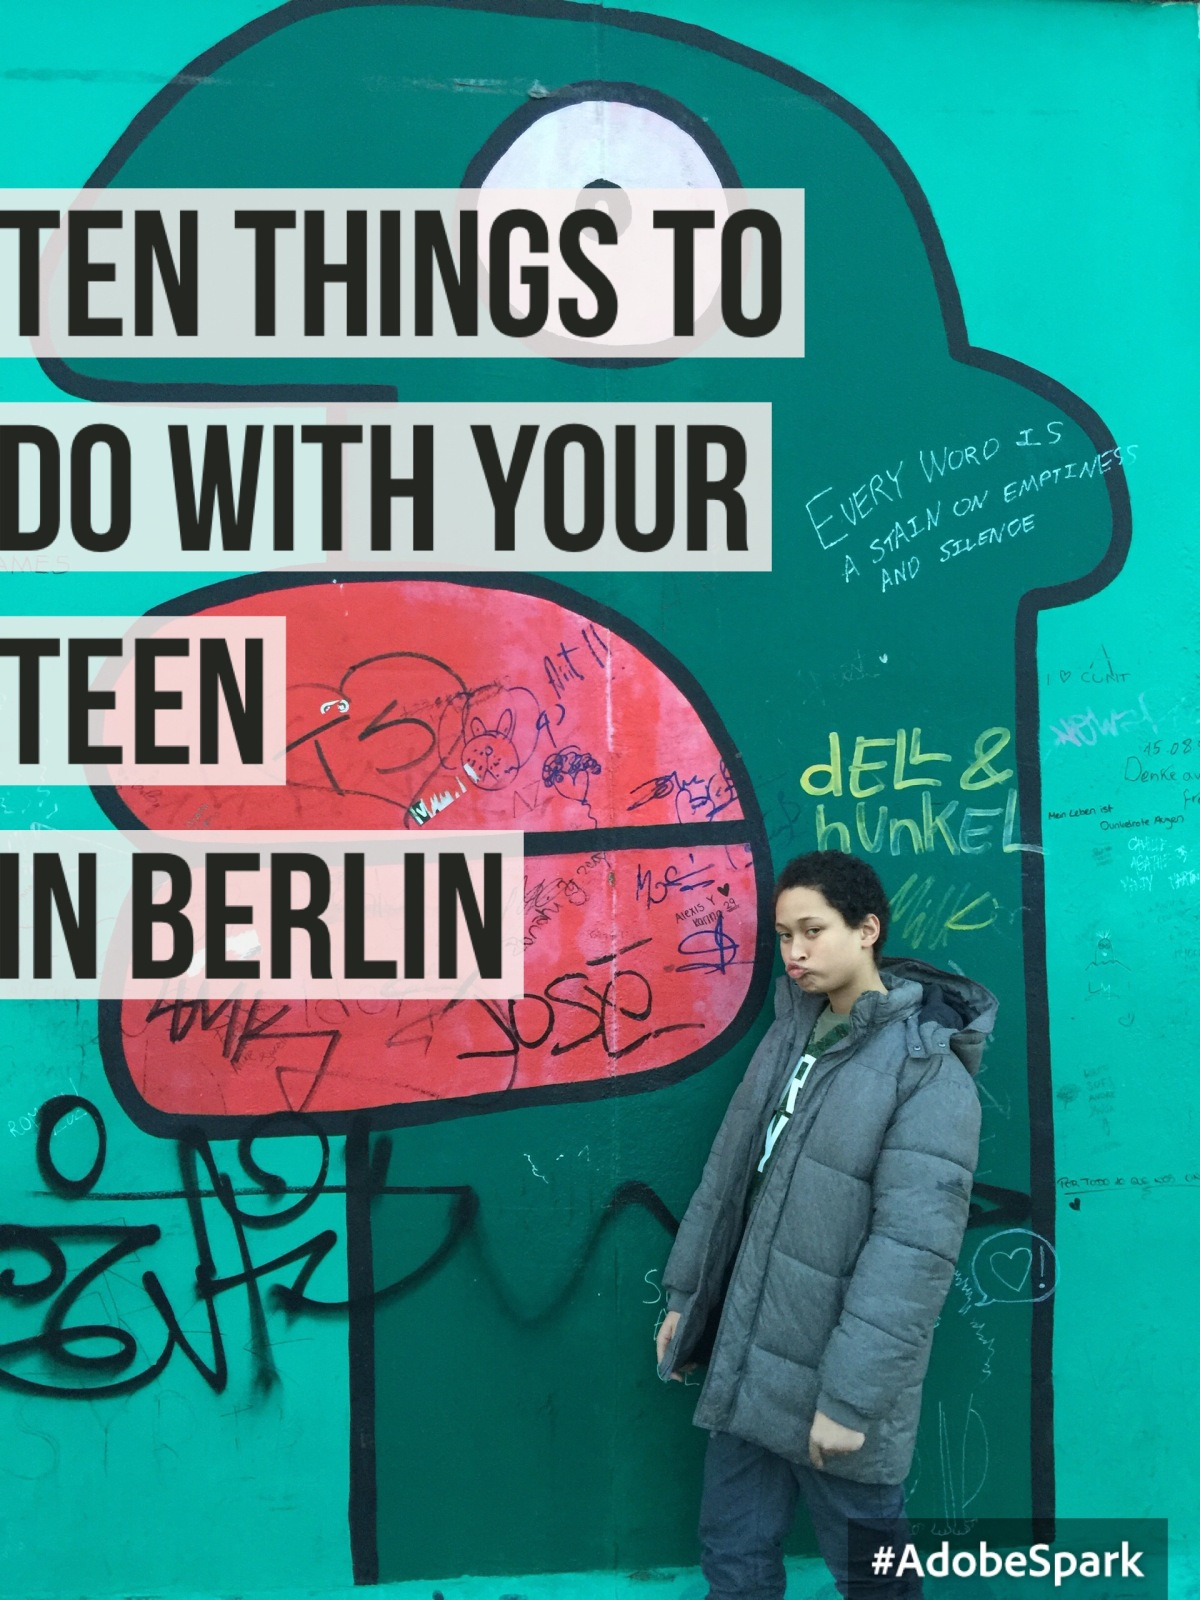 10 things to do with your teen in Berlin, Germany.